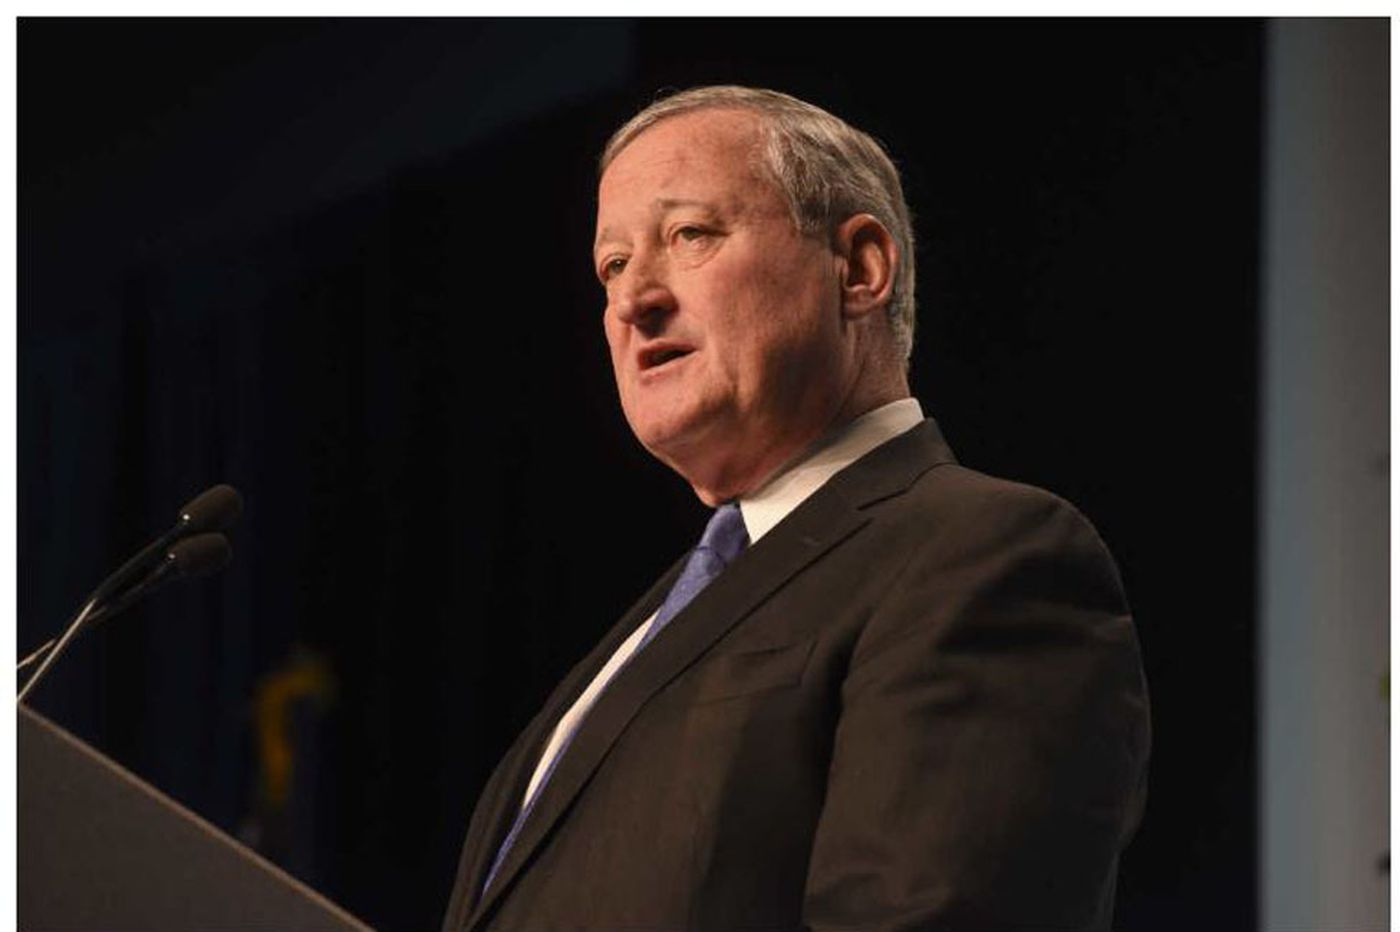 Kenney to Trump administration: Our sanctuary-city policies are legal